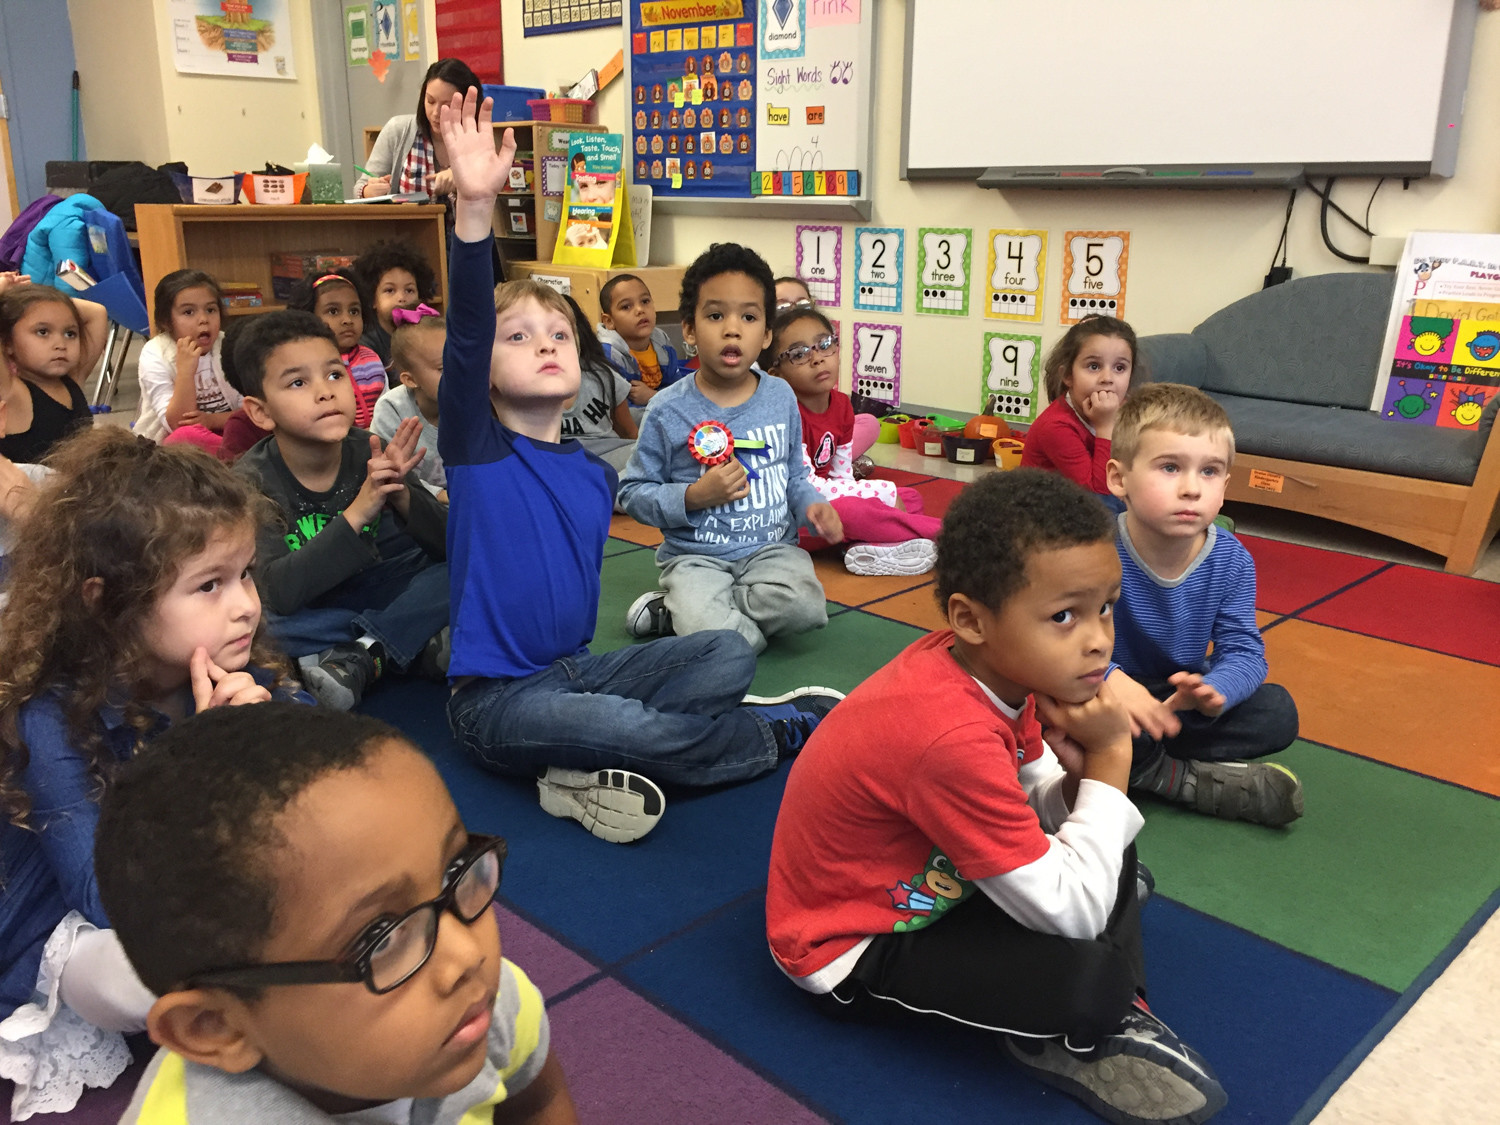 Kindergarten students at P.S. 344 AmPark Neighborhood School talk about how to have a happy class as part of its 'The Leader in Me' program. The goal is to develop leadership qualities, and is based on the book 'The Seven Habits of Happy Kids' by Stephen Covey.